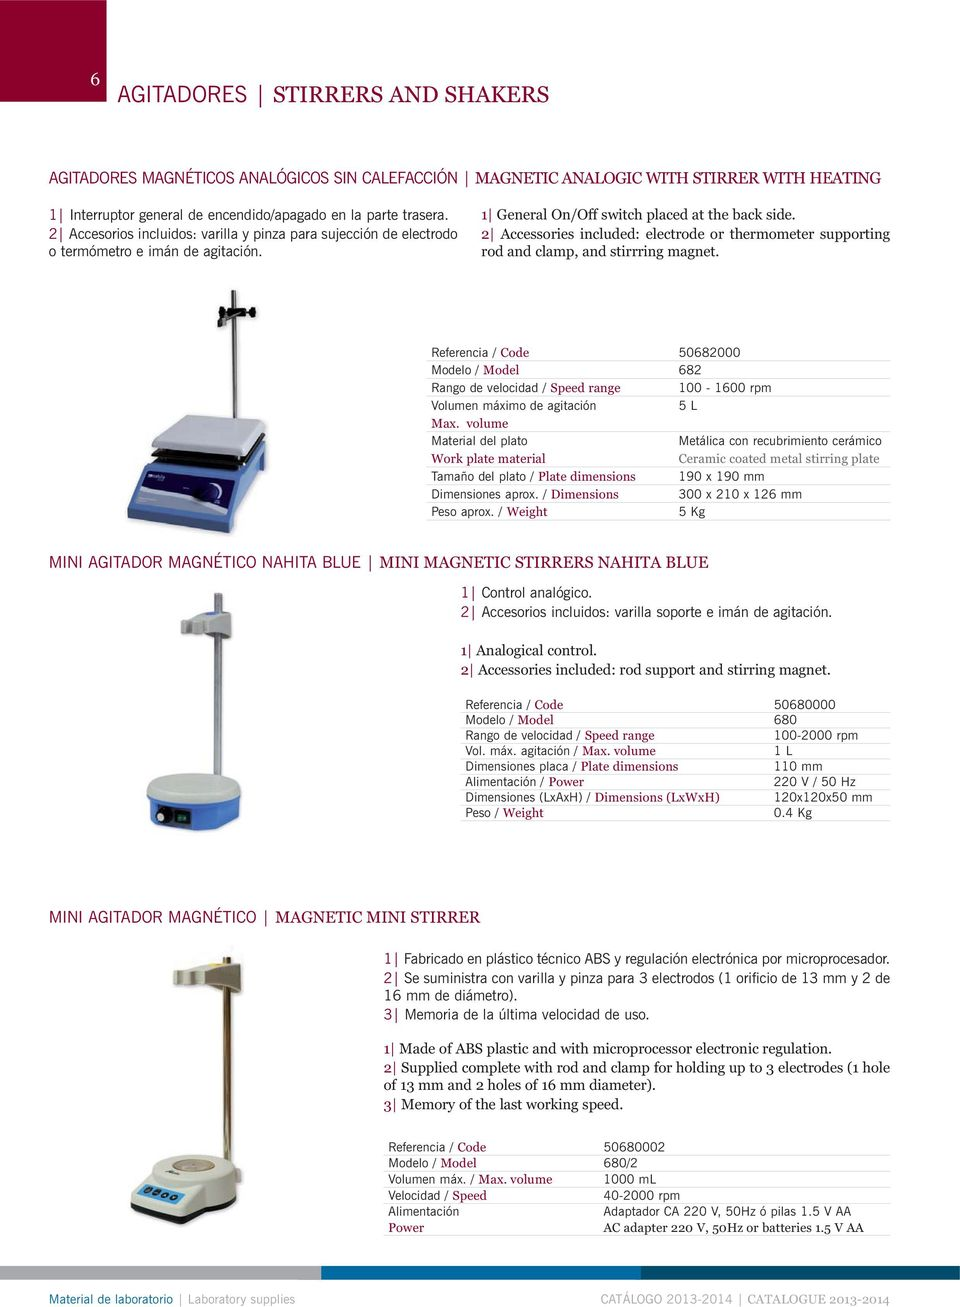 2 Accessories included: electrode or thermometer supporting rod and clamp, and stirrring magnet.